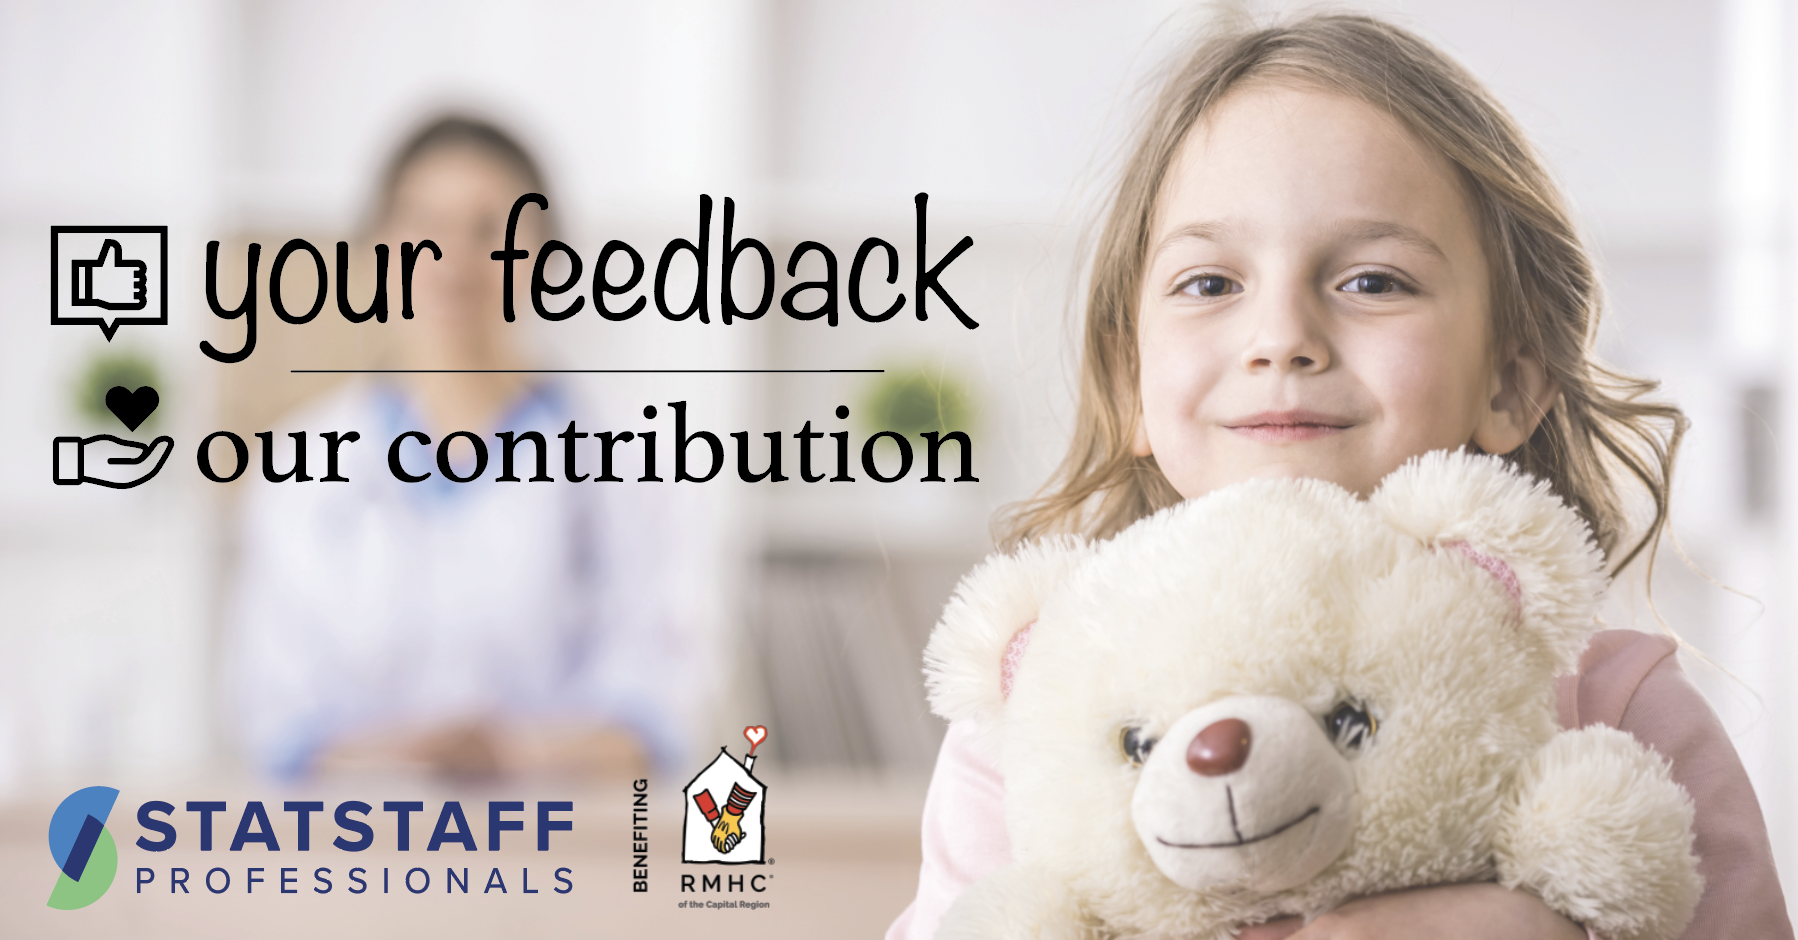 Your feedback, our contribution